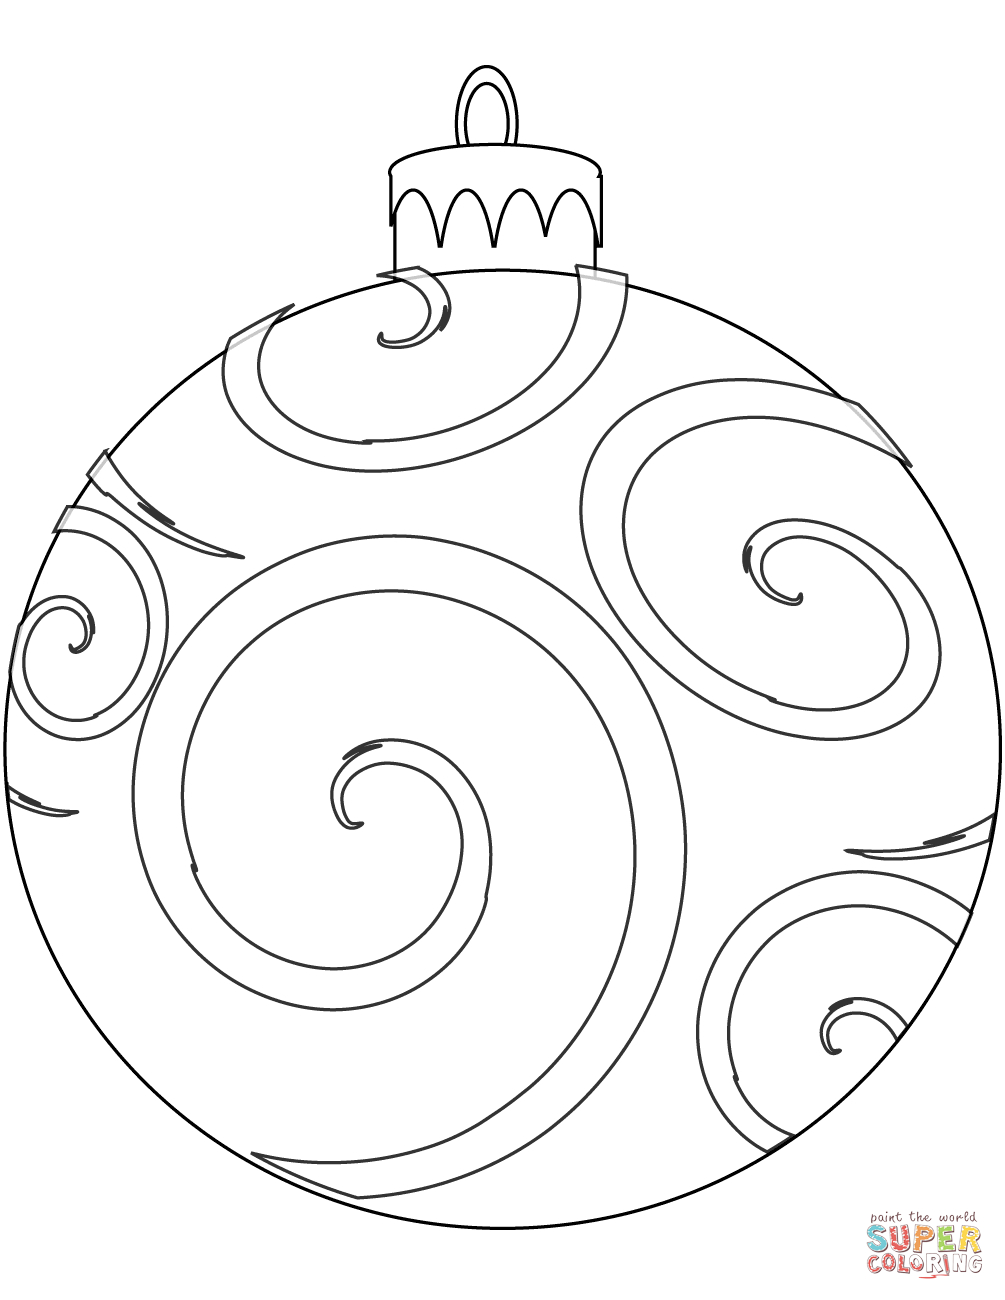 Coloring Pages ~ Holiday Ornamenting Page Christmas Picture - Free Printable Christmas Ornaments